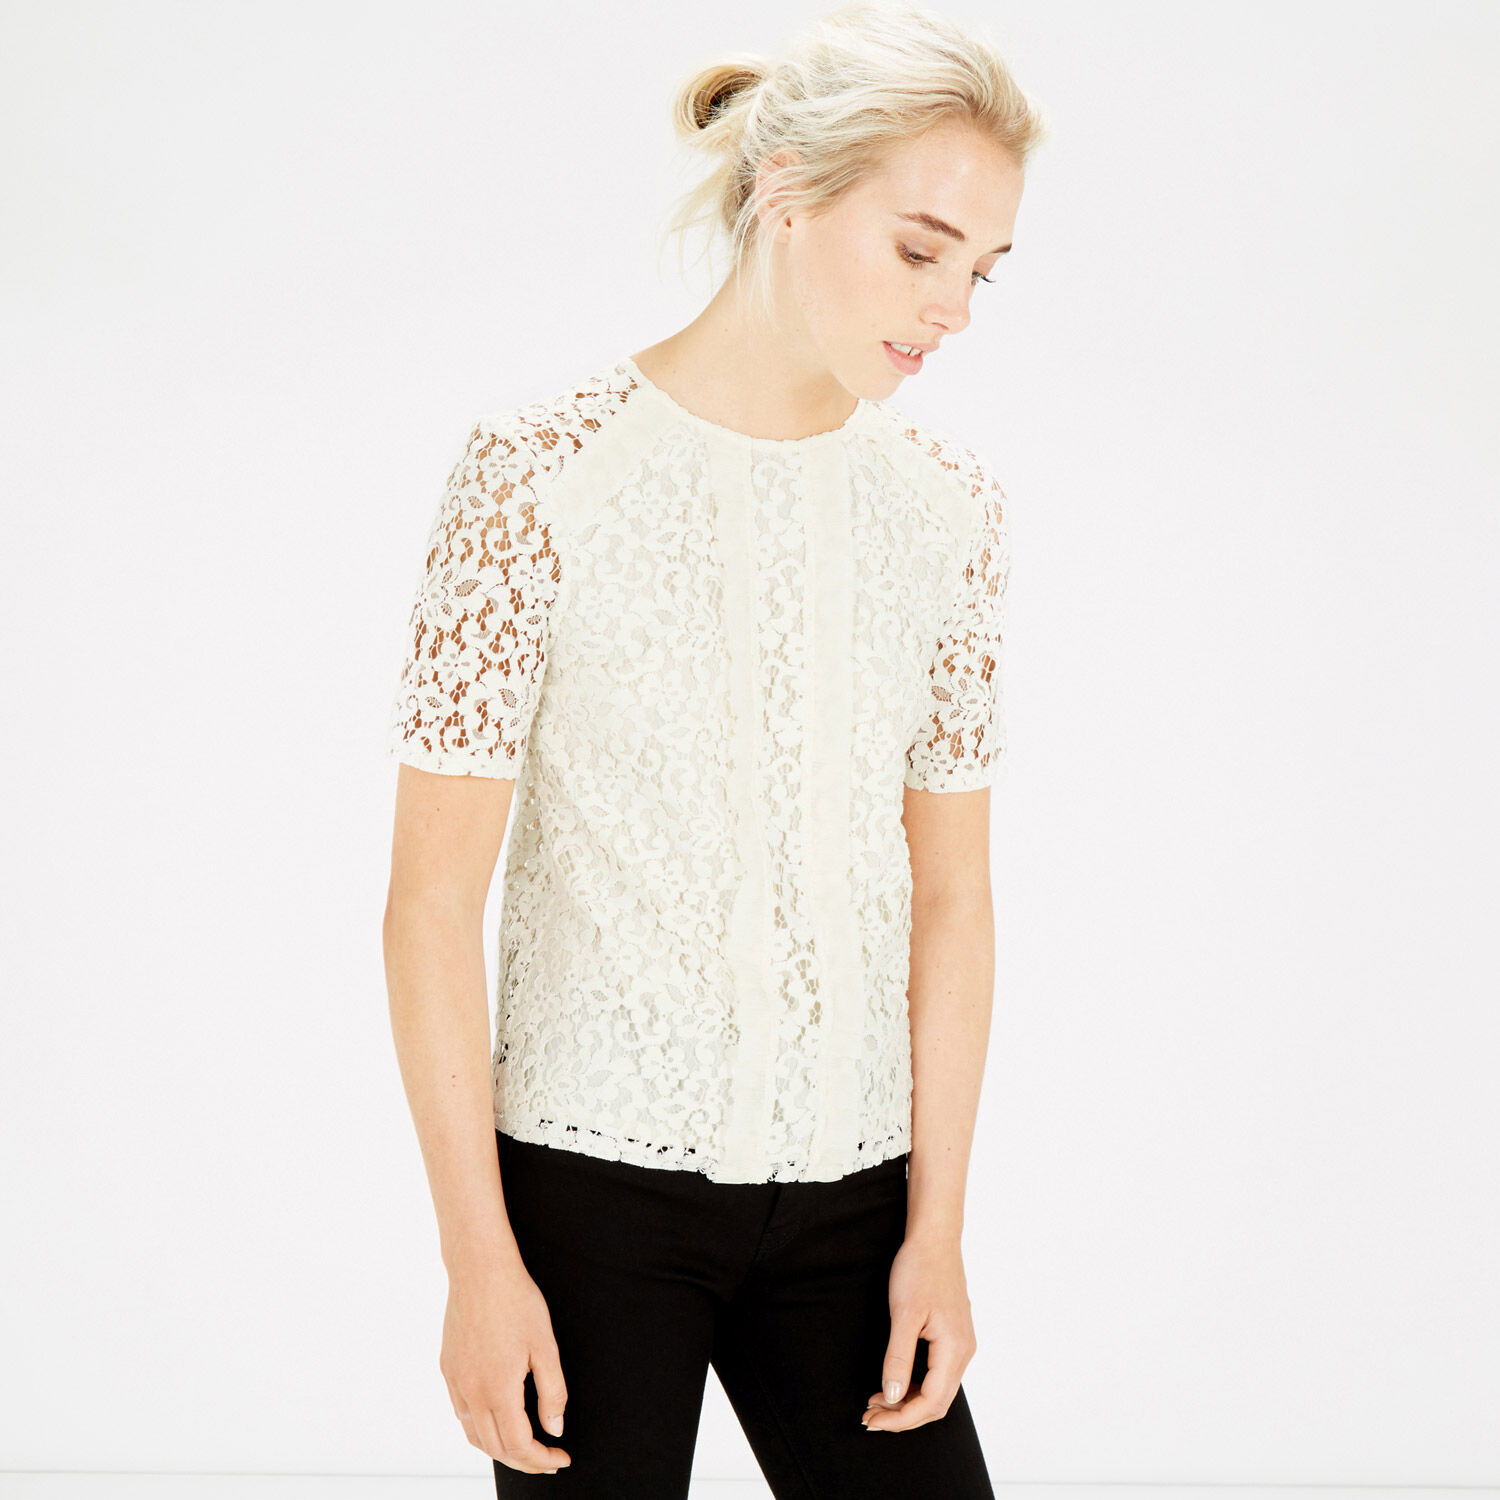 Warehouse, PANELLED LACE TOP Cream 1